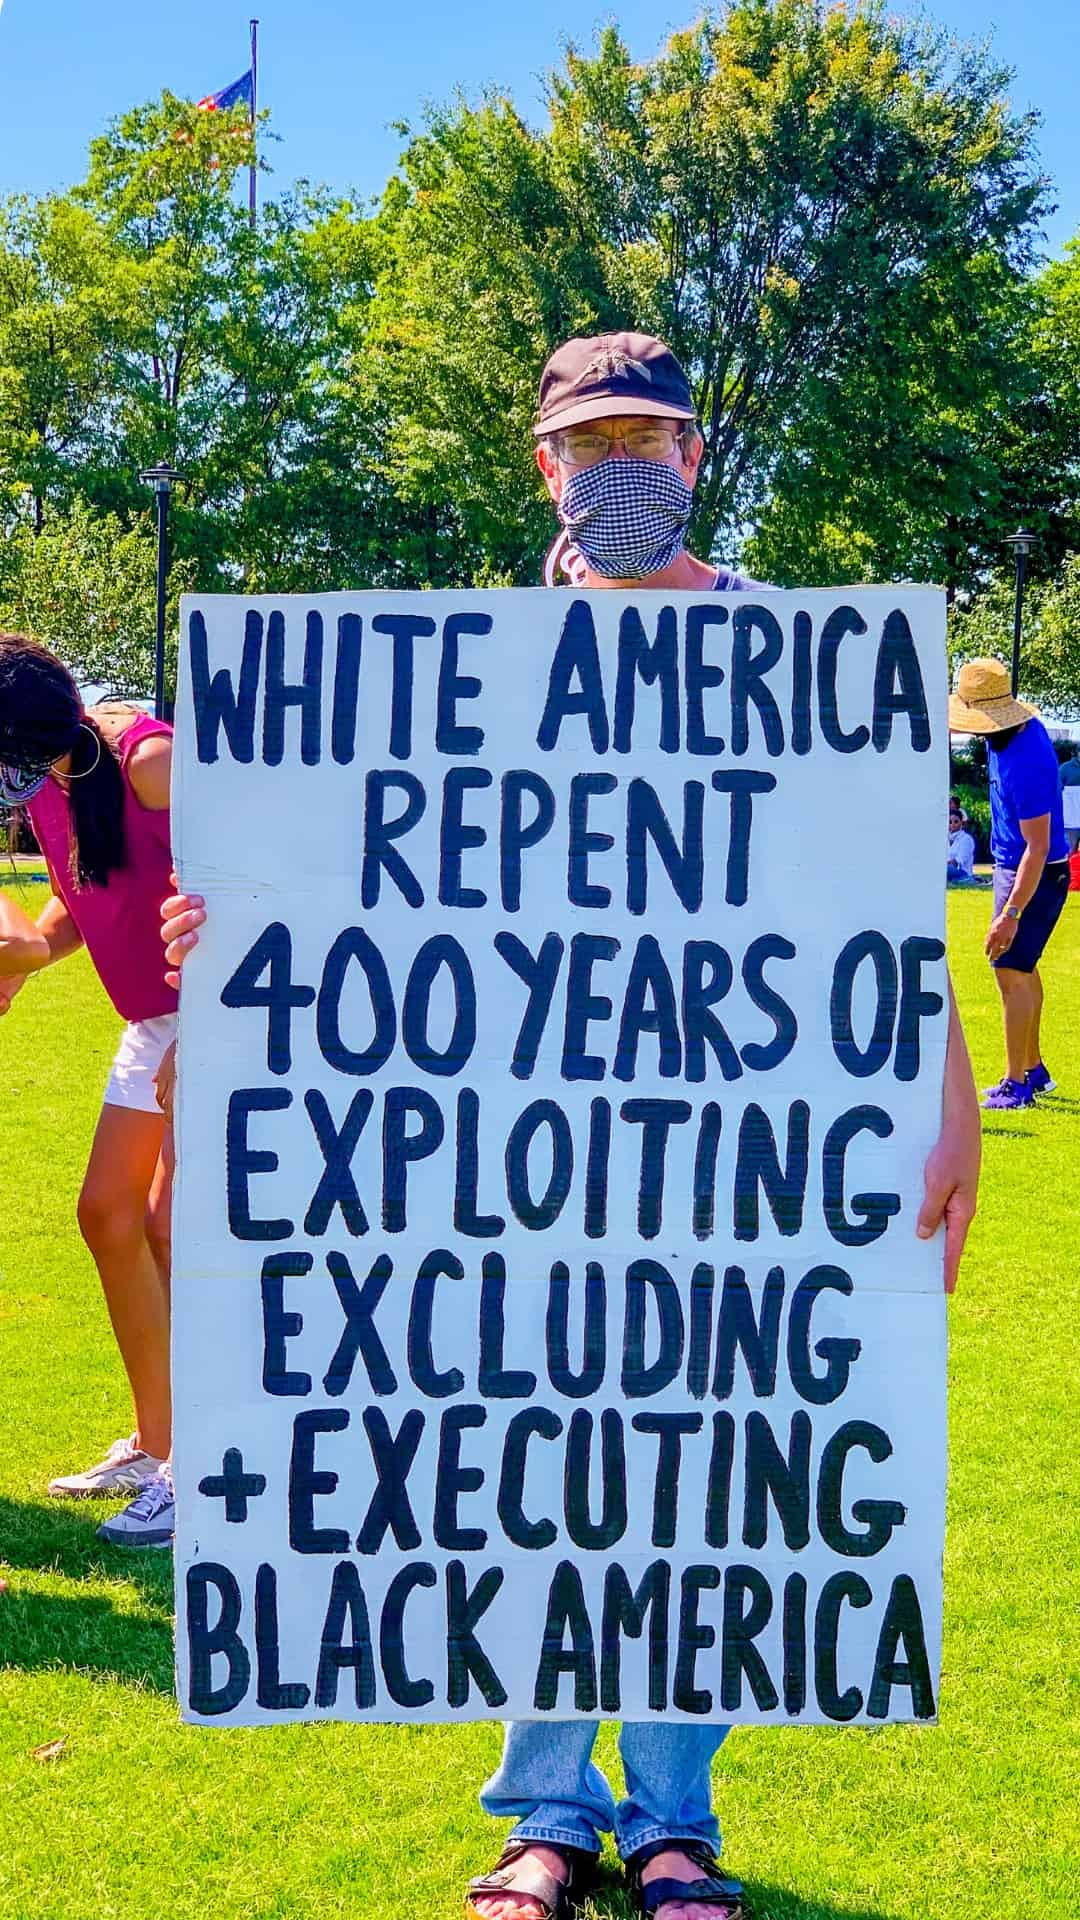 White America repent 400 years protest sign